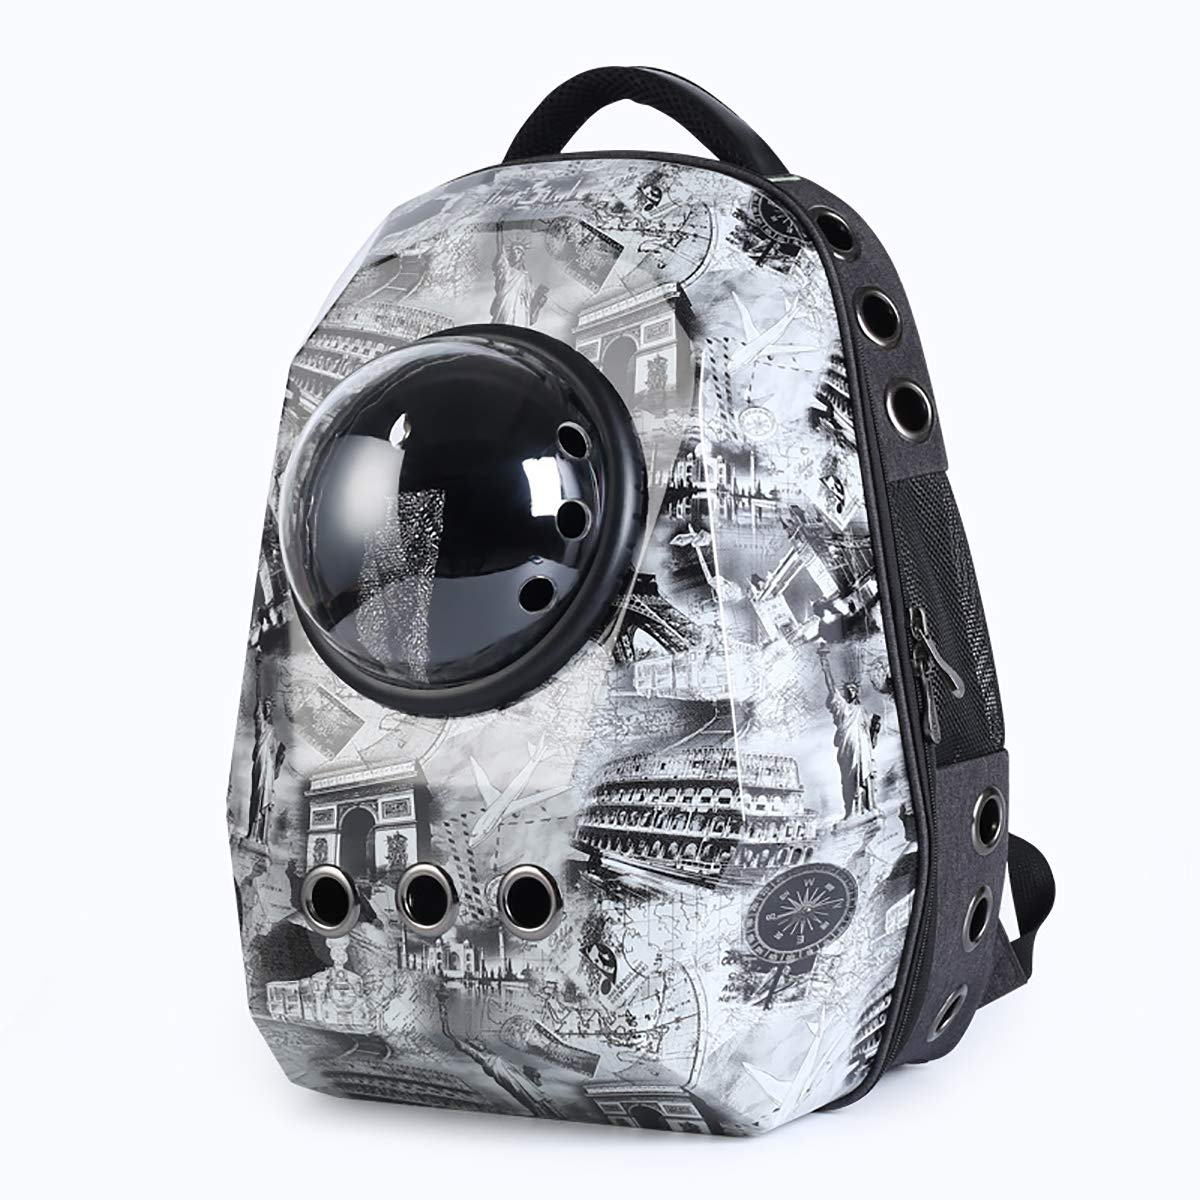 A Pet Backpack Extra Large Pet Backpack Out Portable Space Pet Cat Bag Pet Dog Travel Space Backpack